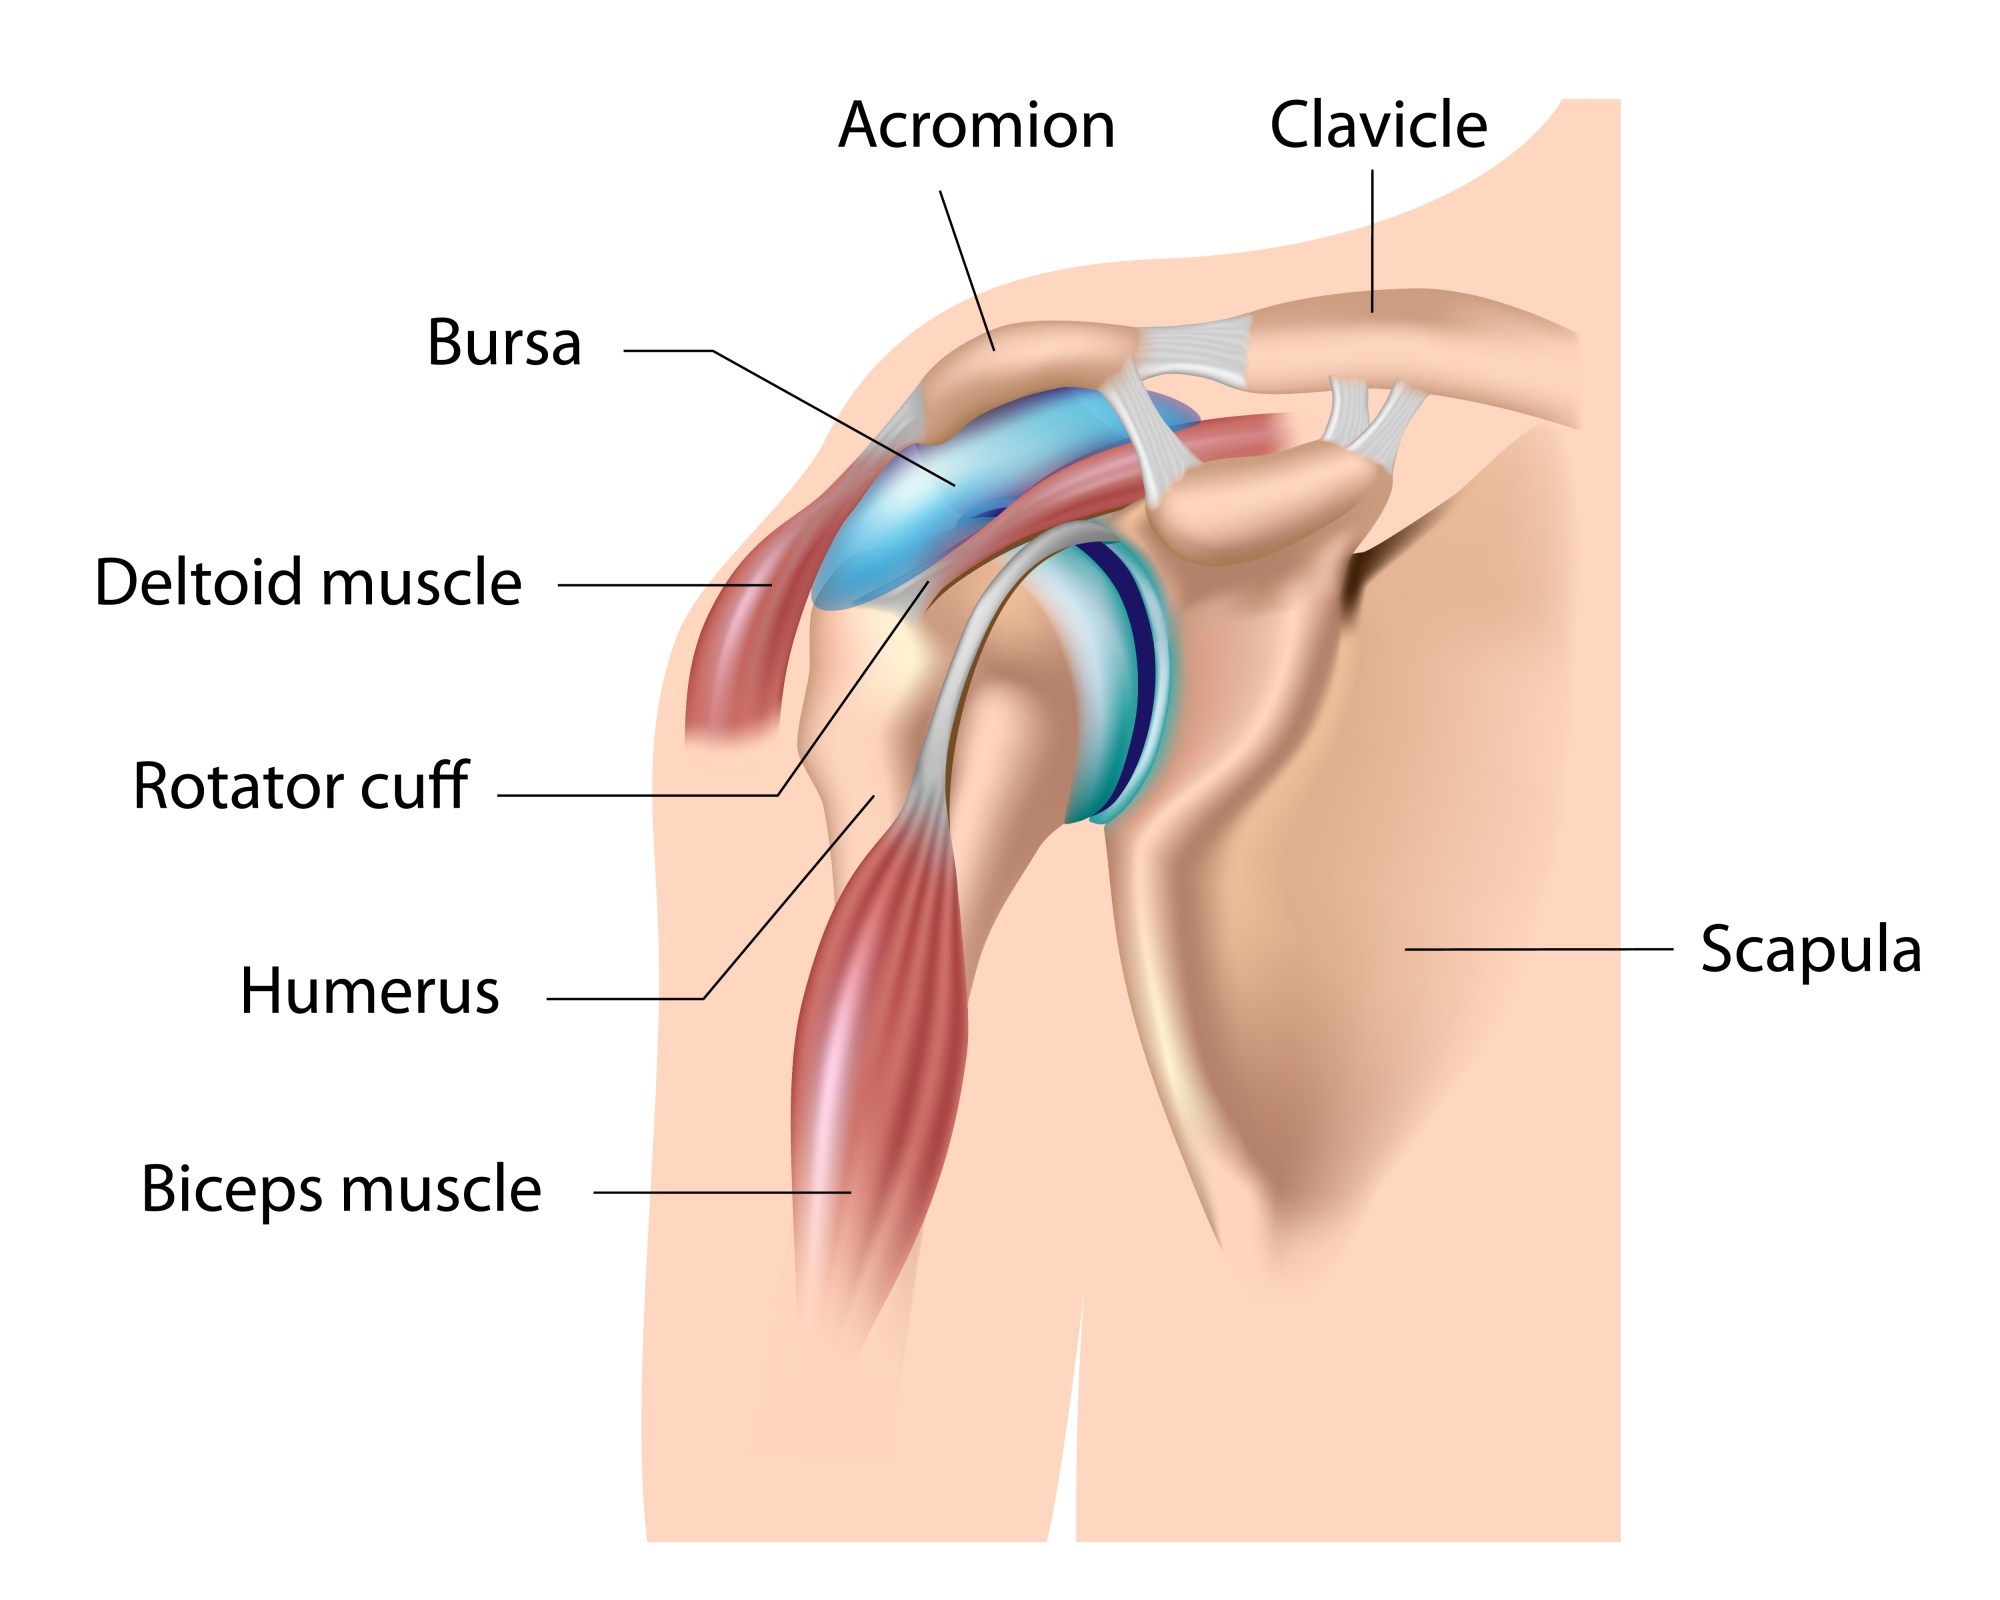 hight resolution of in many of the joints in our body there are structures called bursa